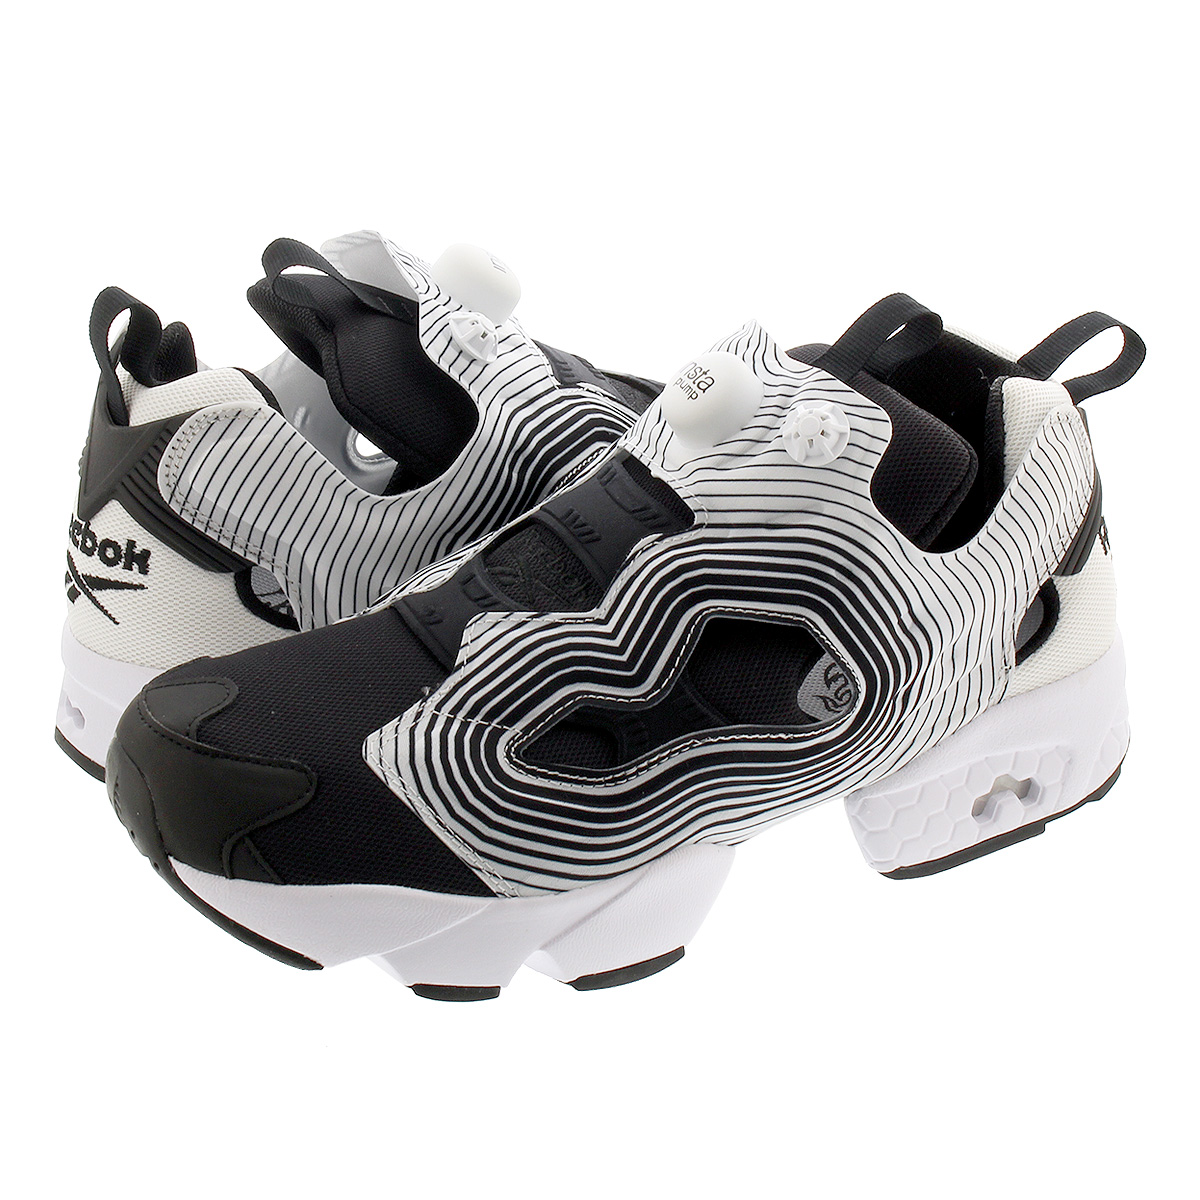 Reebok INSTA PUMP FURY OG NM リーボック インスタ ポンプ フューリー OG NM BLACK/WHITE/BLACK fv4501